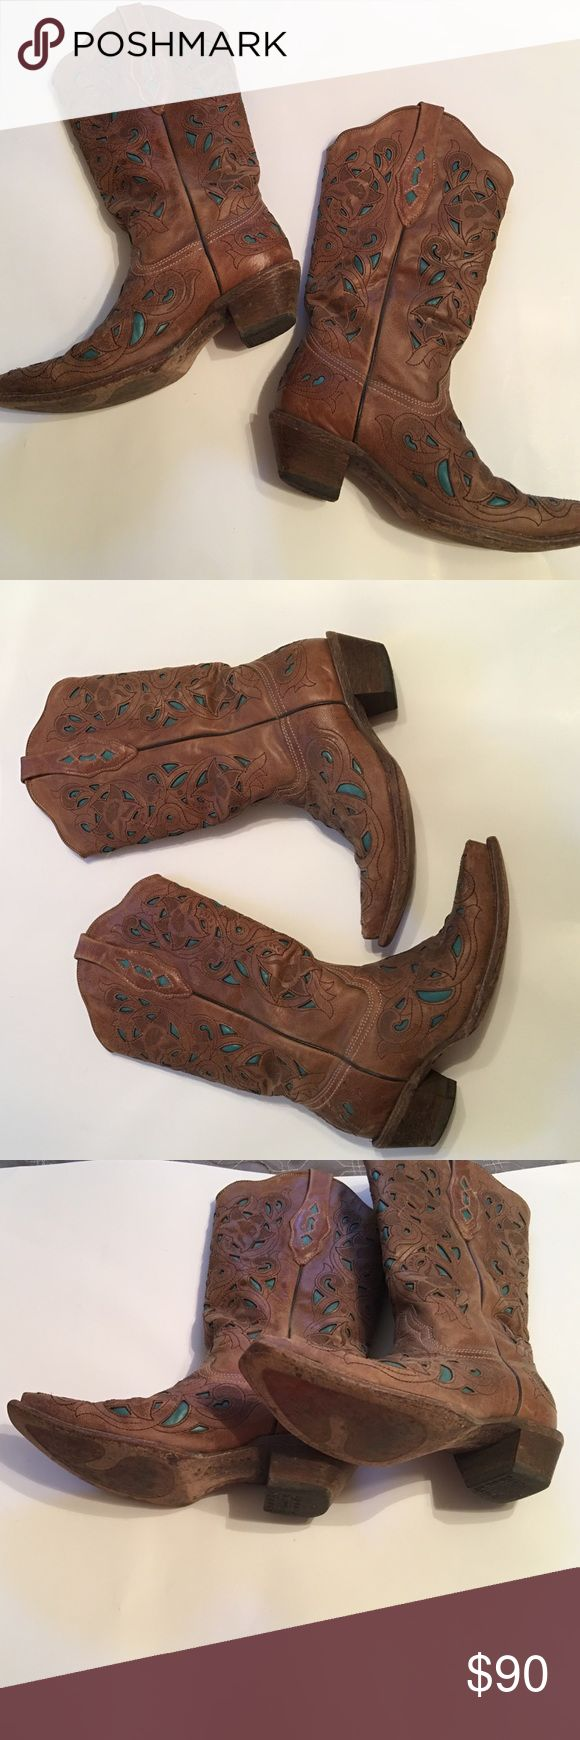 Cavendars Boots Corral vintage boots. Worn 6-7 times and in excellent condition! No defects or any staining of any kind. Size 7.5! cavendars  Shoes Heeled Boots